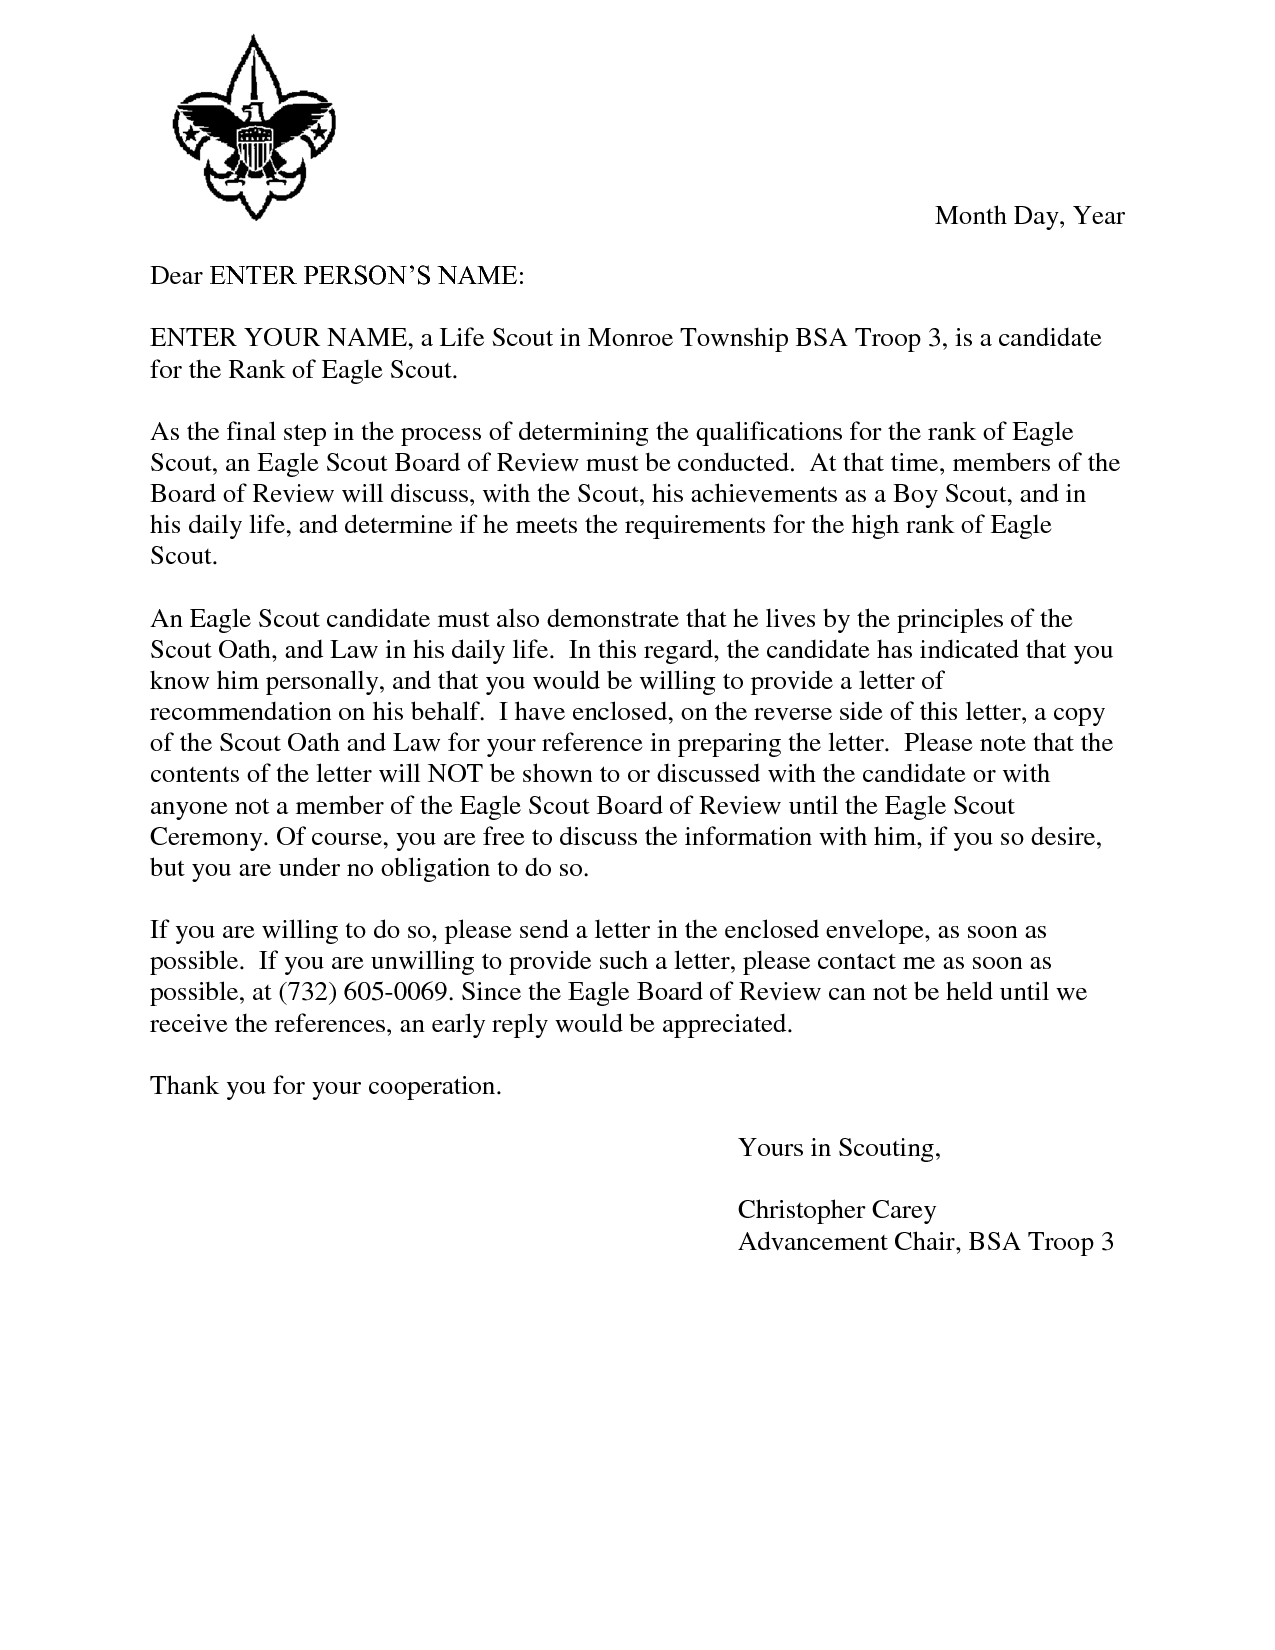 Letter Of Recommendation for Yourself Template - Eagle Scout Reference Request Sample Letter Doc 7 by Hfr990q